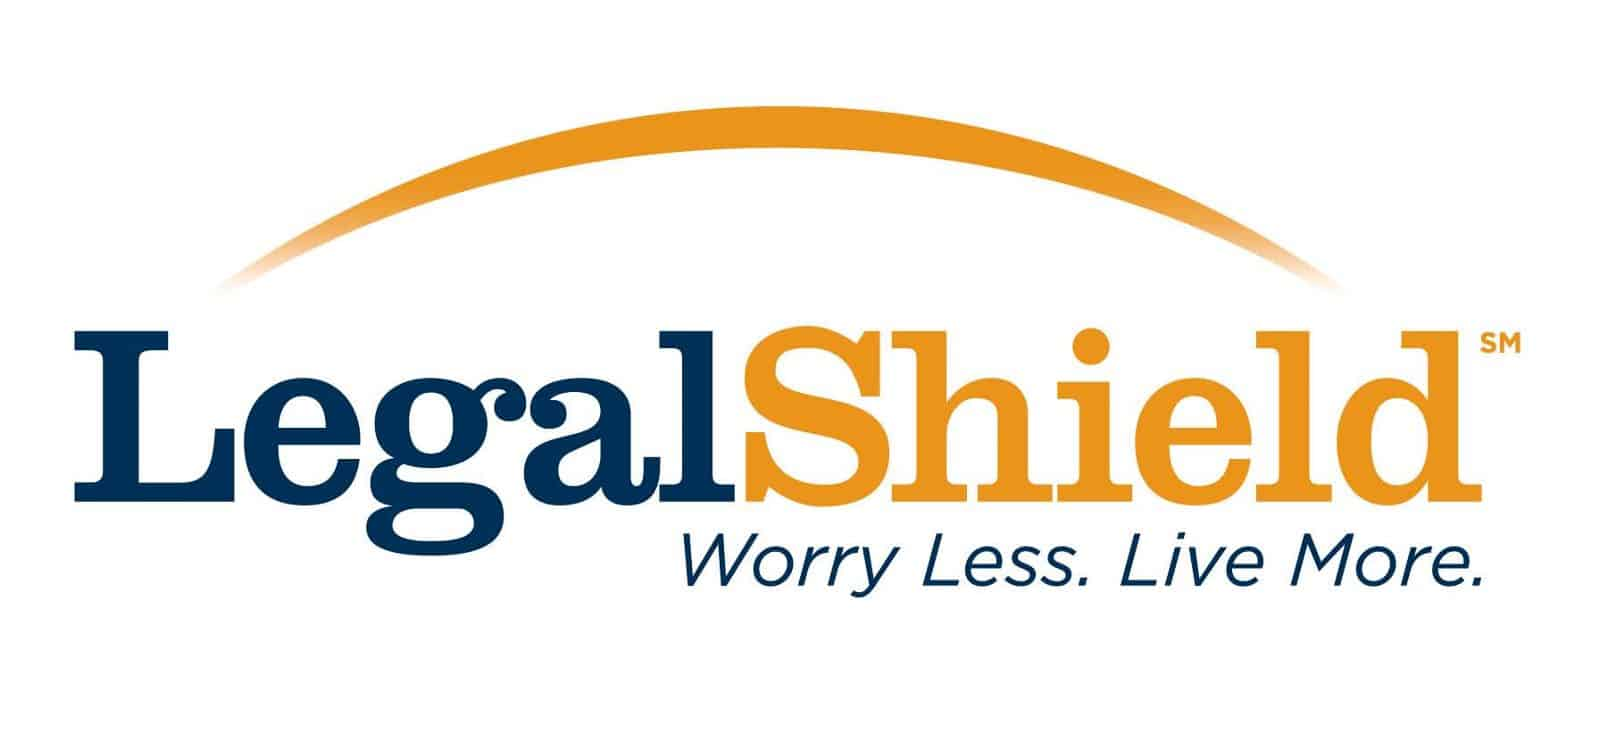 is legal shield a scam review photo